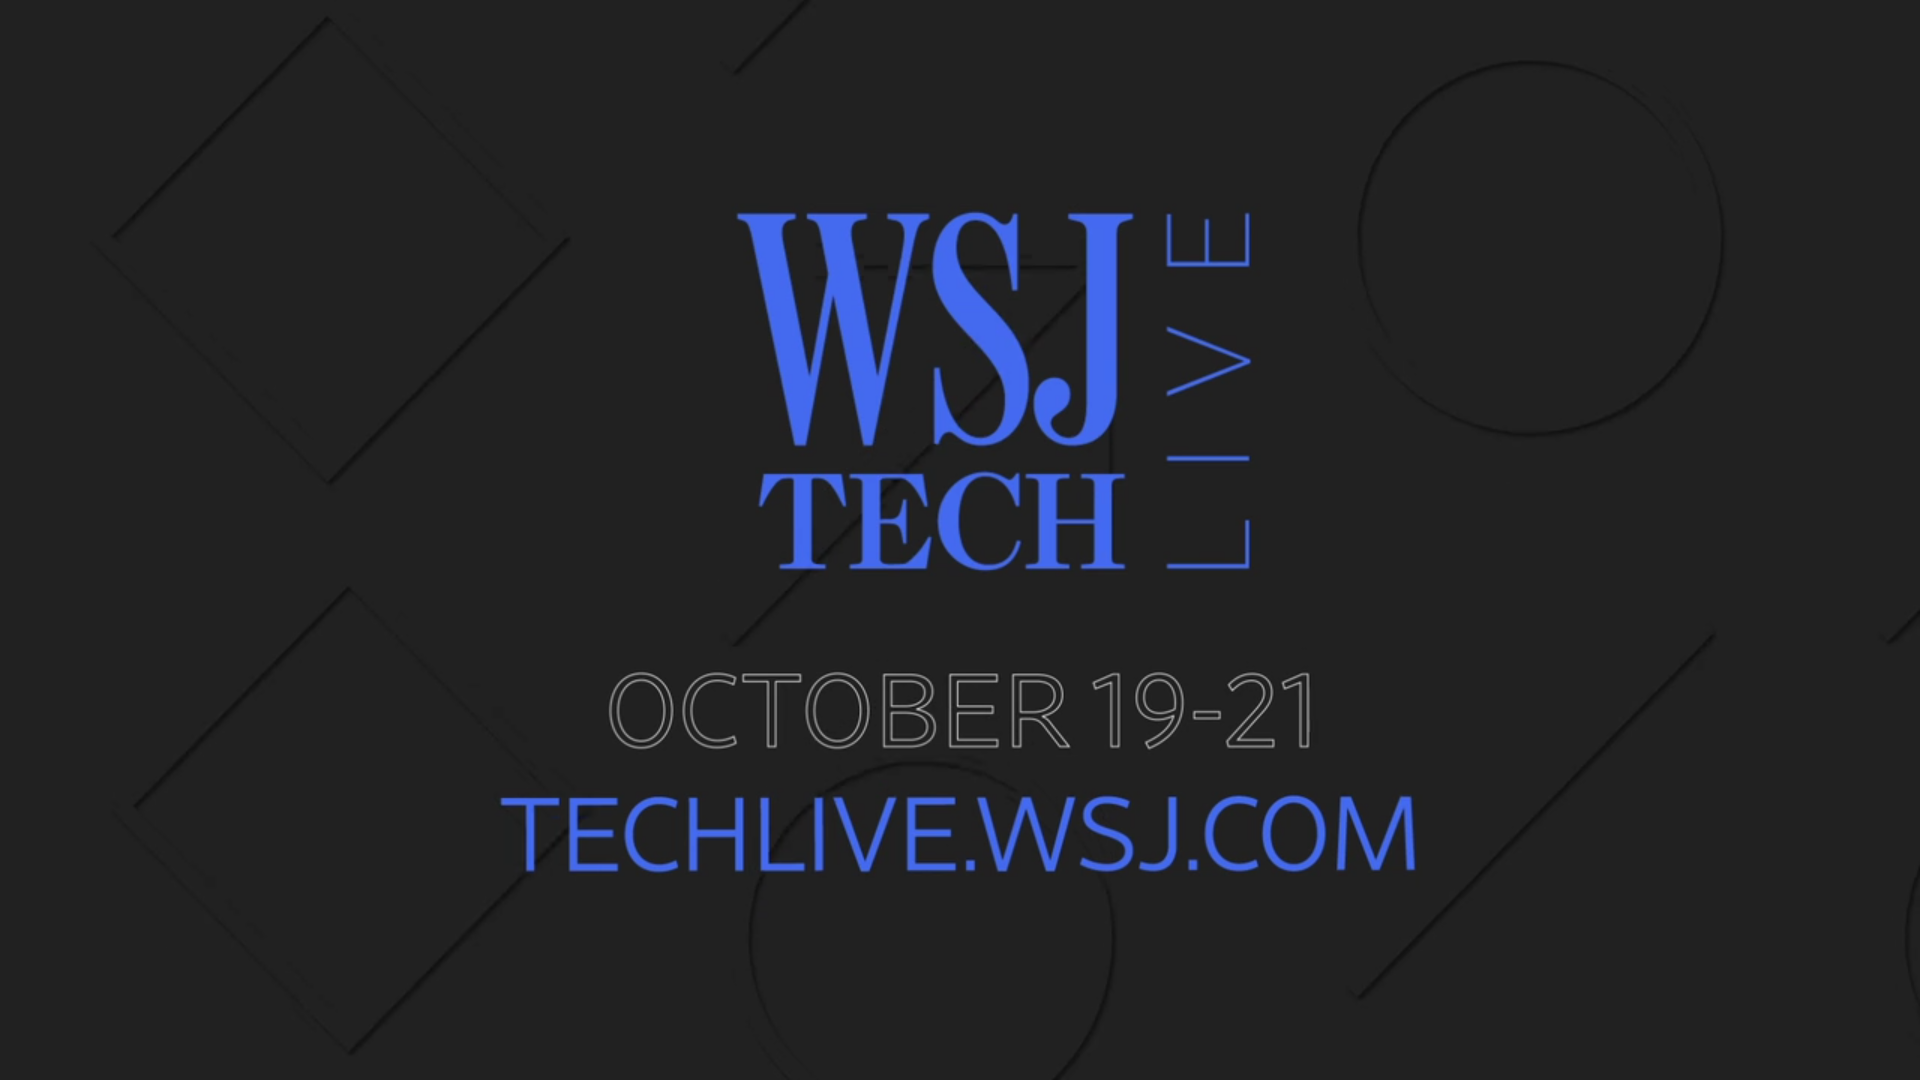 Match Group CEO to Speak at  Wall Street Journal Tech Live